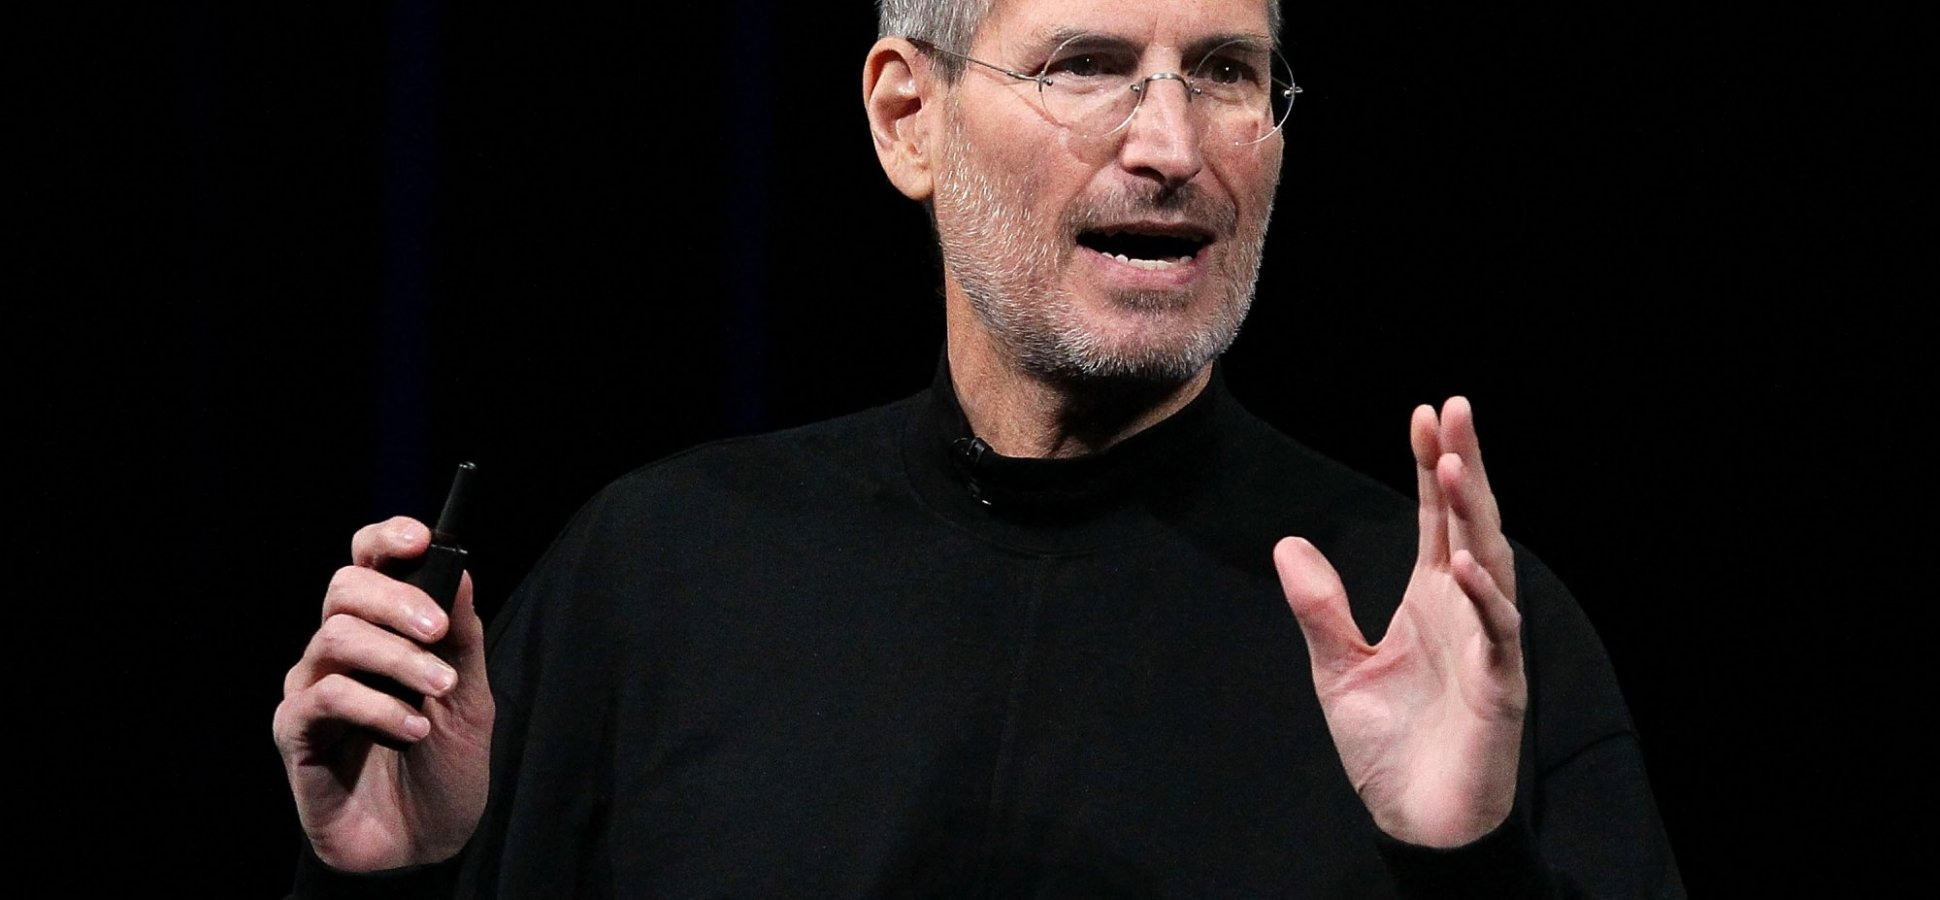 Guy Kawasaki Explains Why Steve Jobs Used 190-Point Text on Presentation Slides